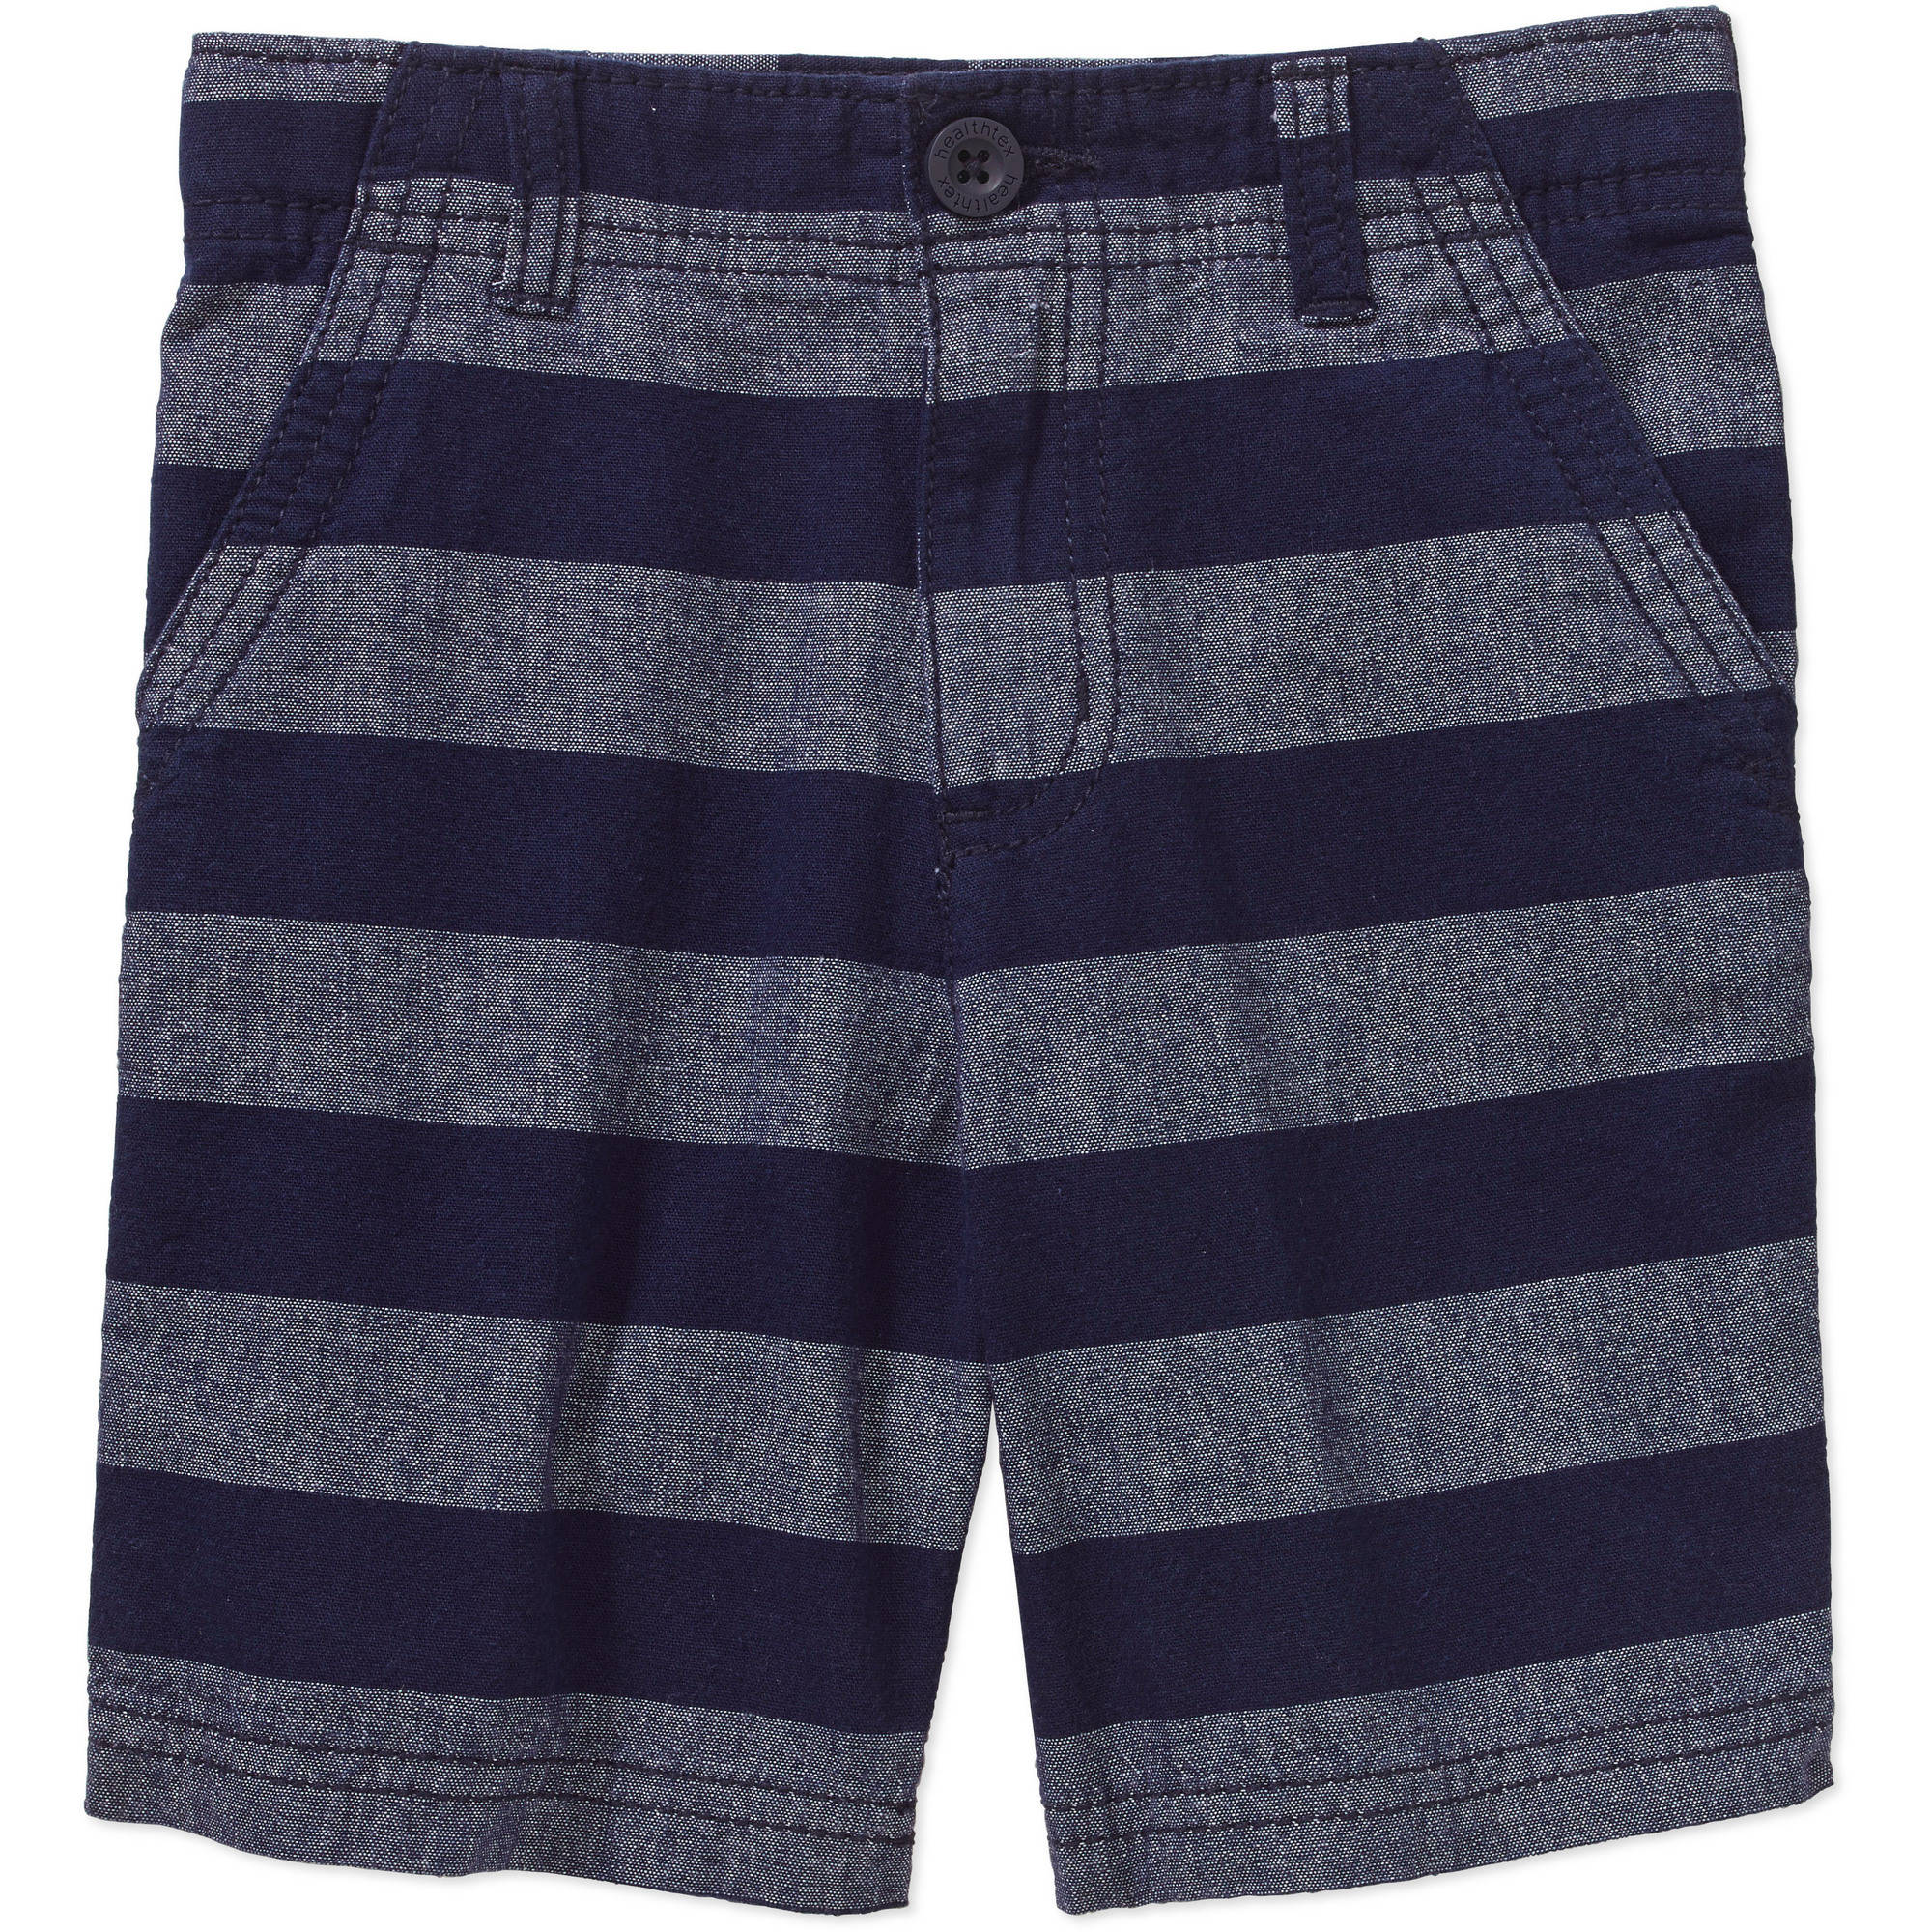 Healthtex Baby Toddler Boy Flat Front Cotton Shorts